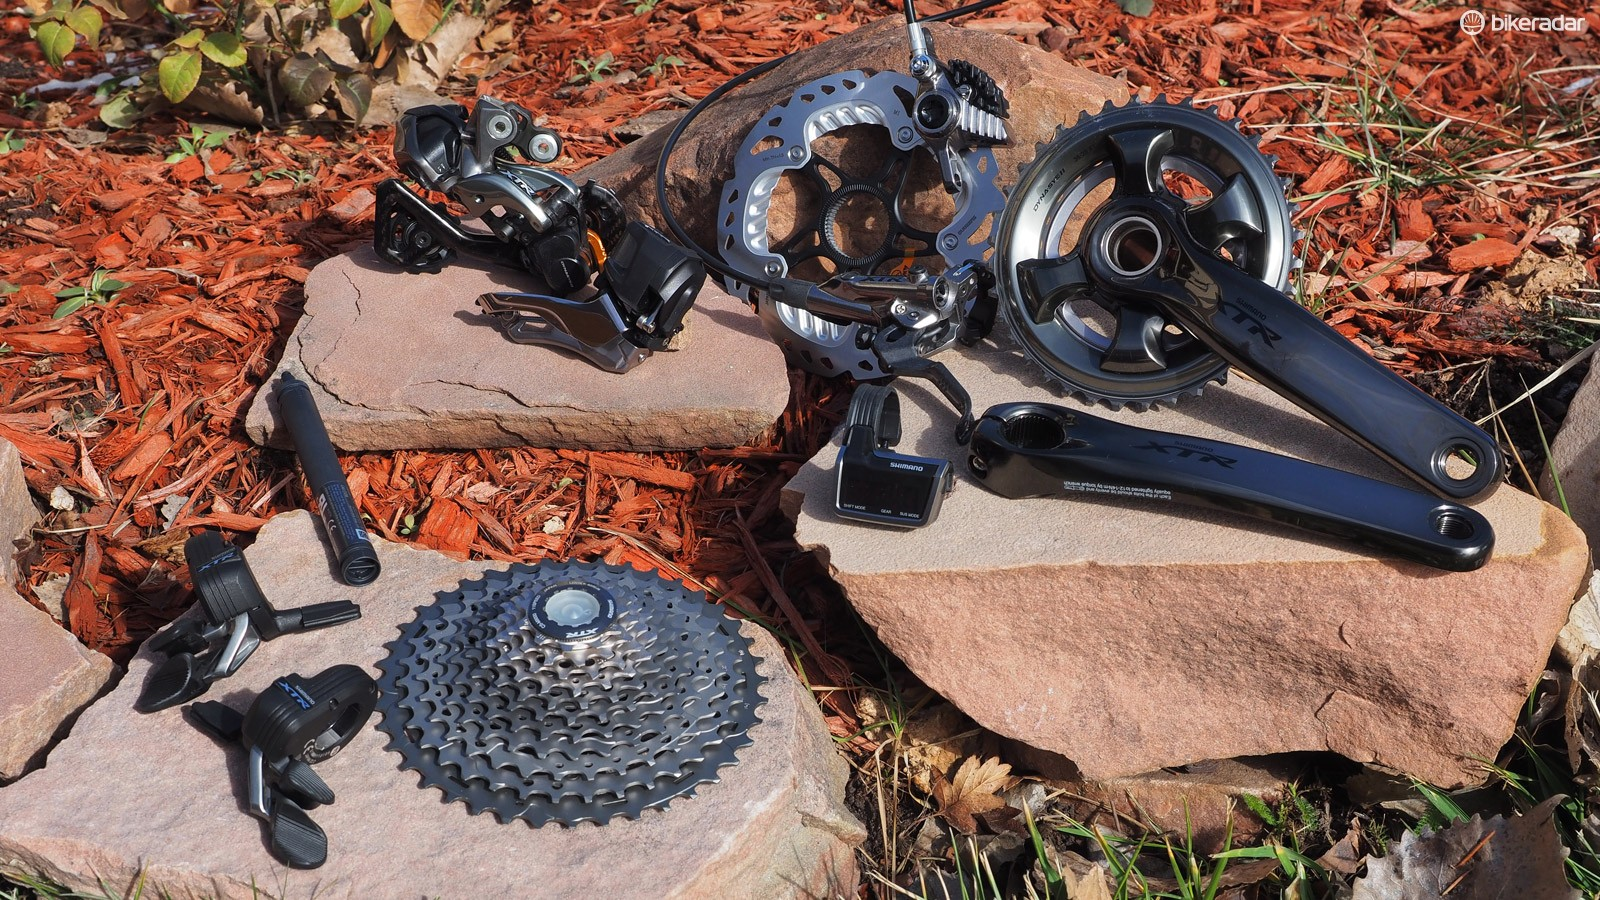 Shimano's XTR Di2 electronic group is arguably the hottest topic in mountain bike gear at the moment - and now we've got a set in our hands for long-term testing